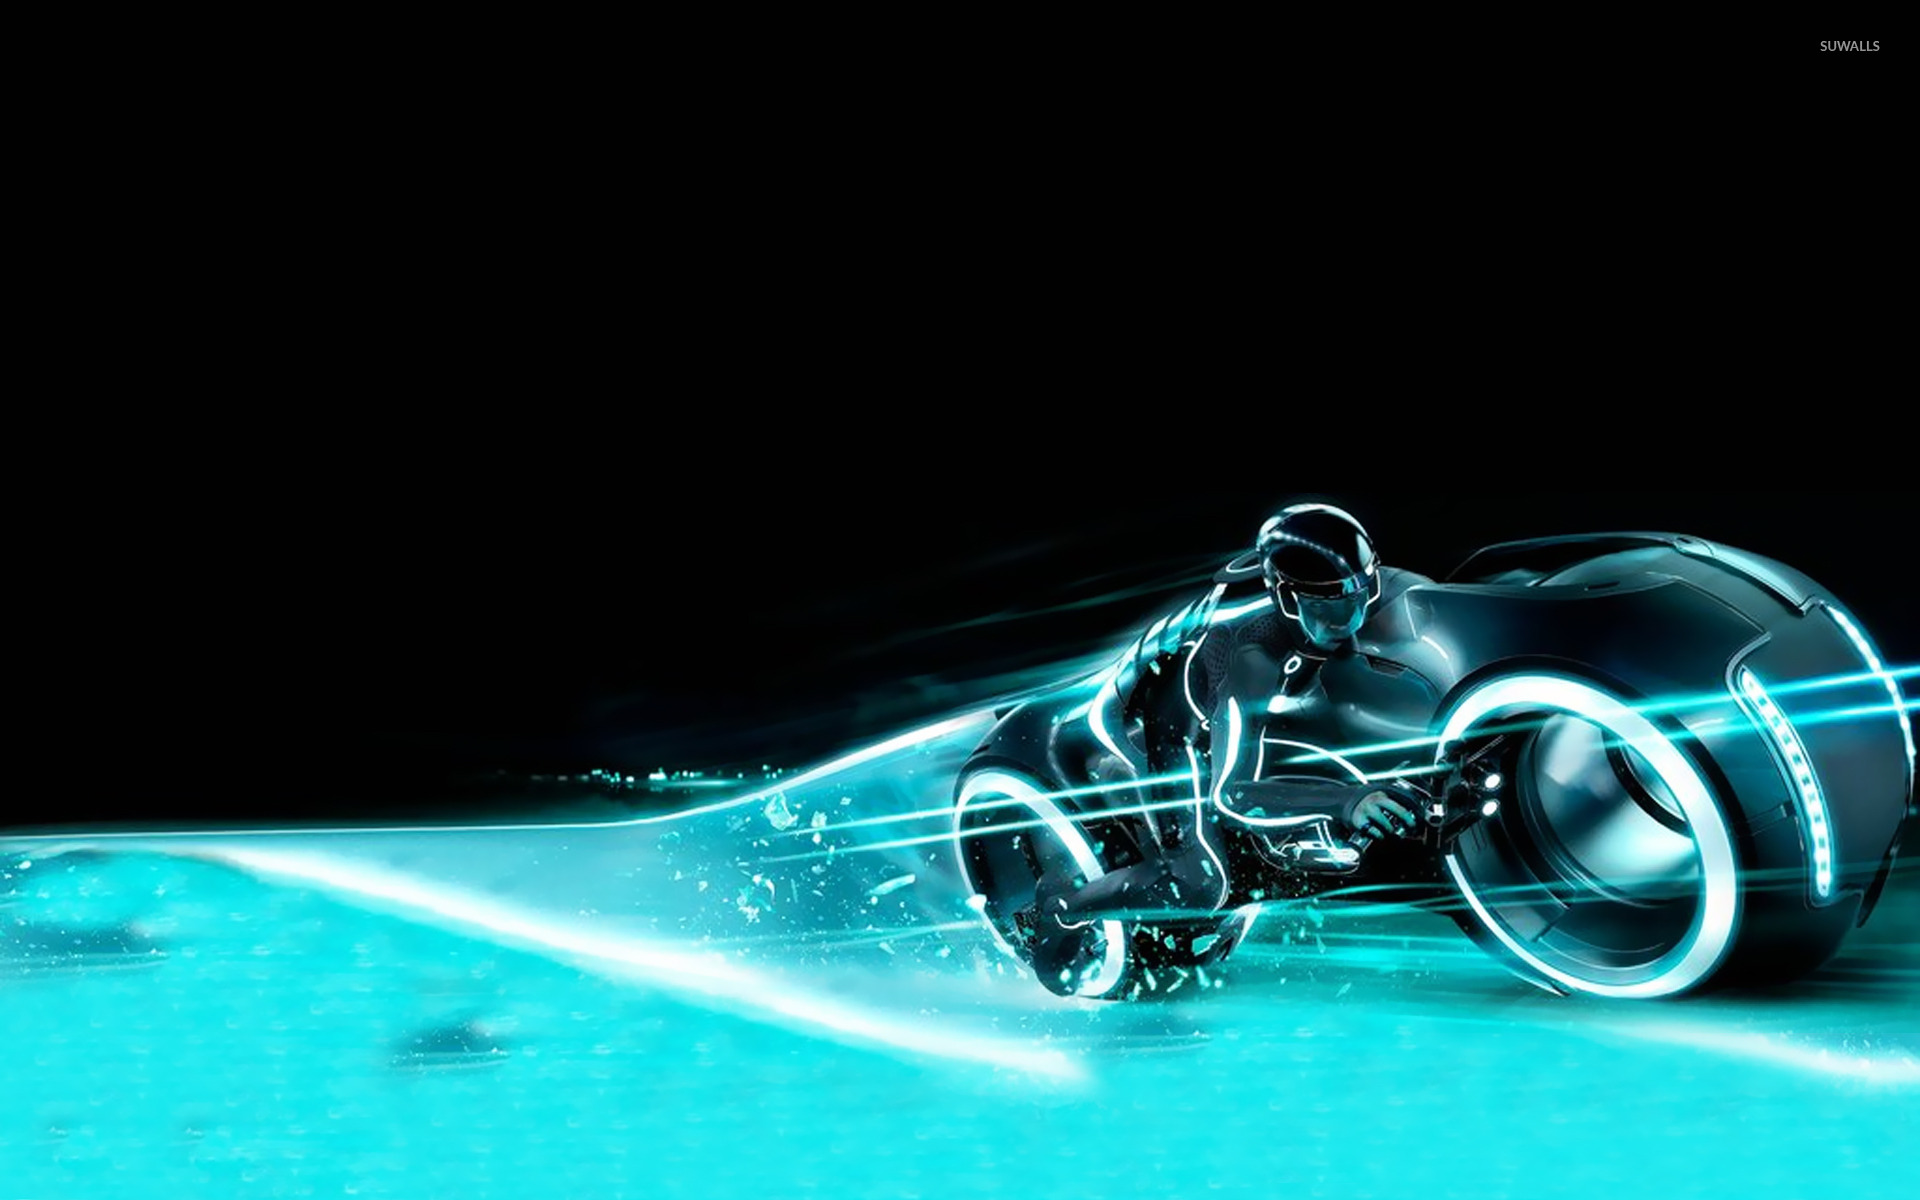 TRON Legacy 6 Wallpaper